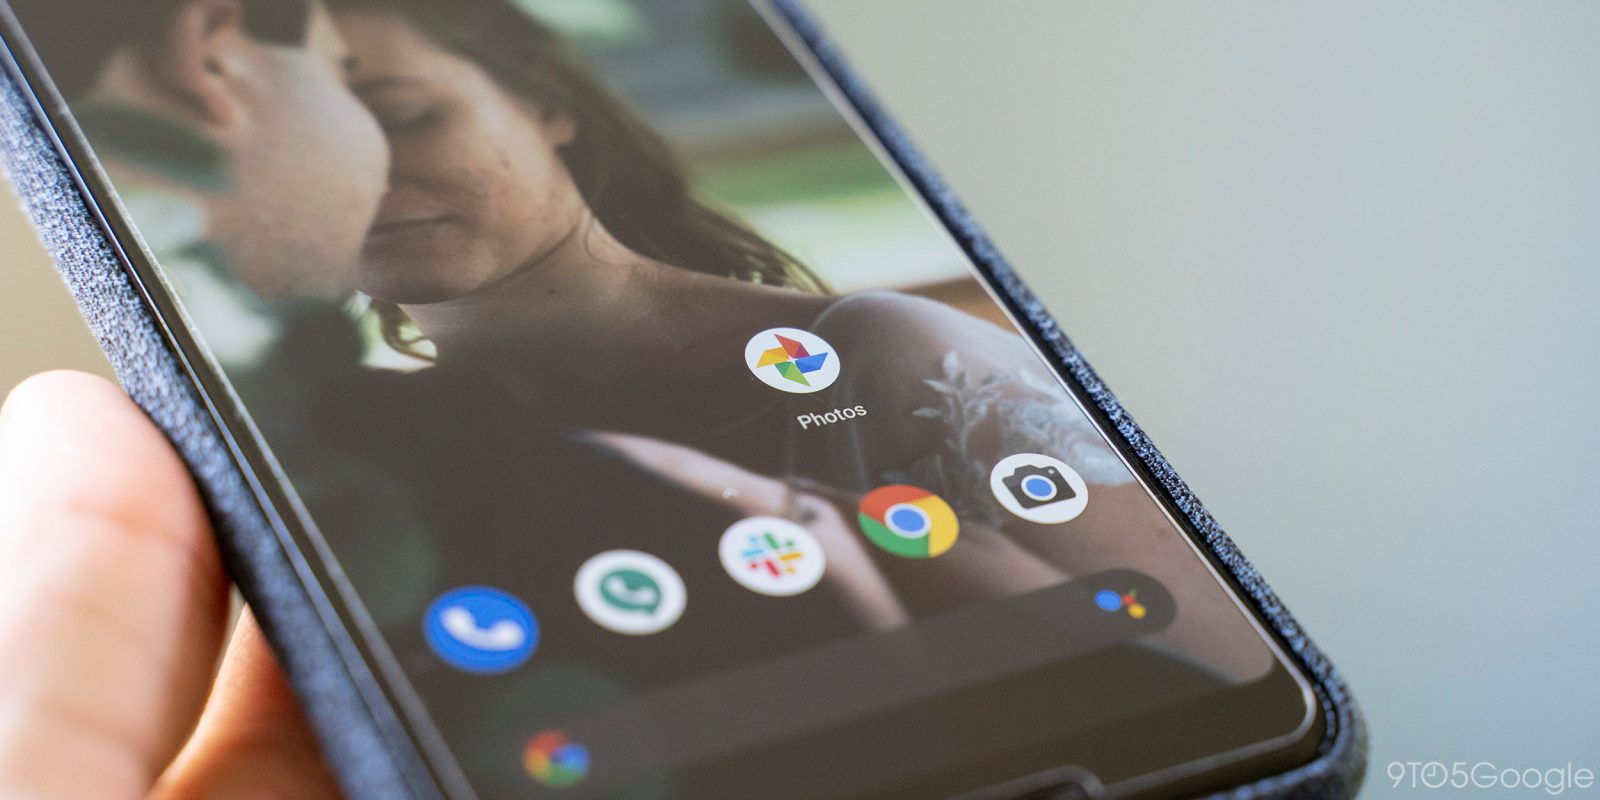 9to5Google - Google news, Pixel, Android, Home, Chrome OS, more